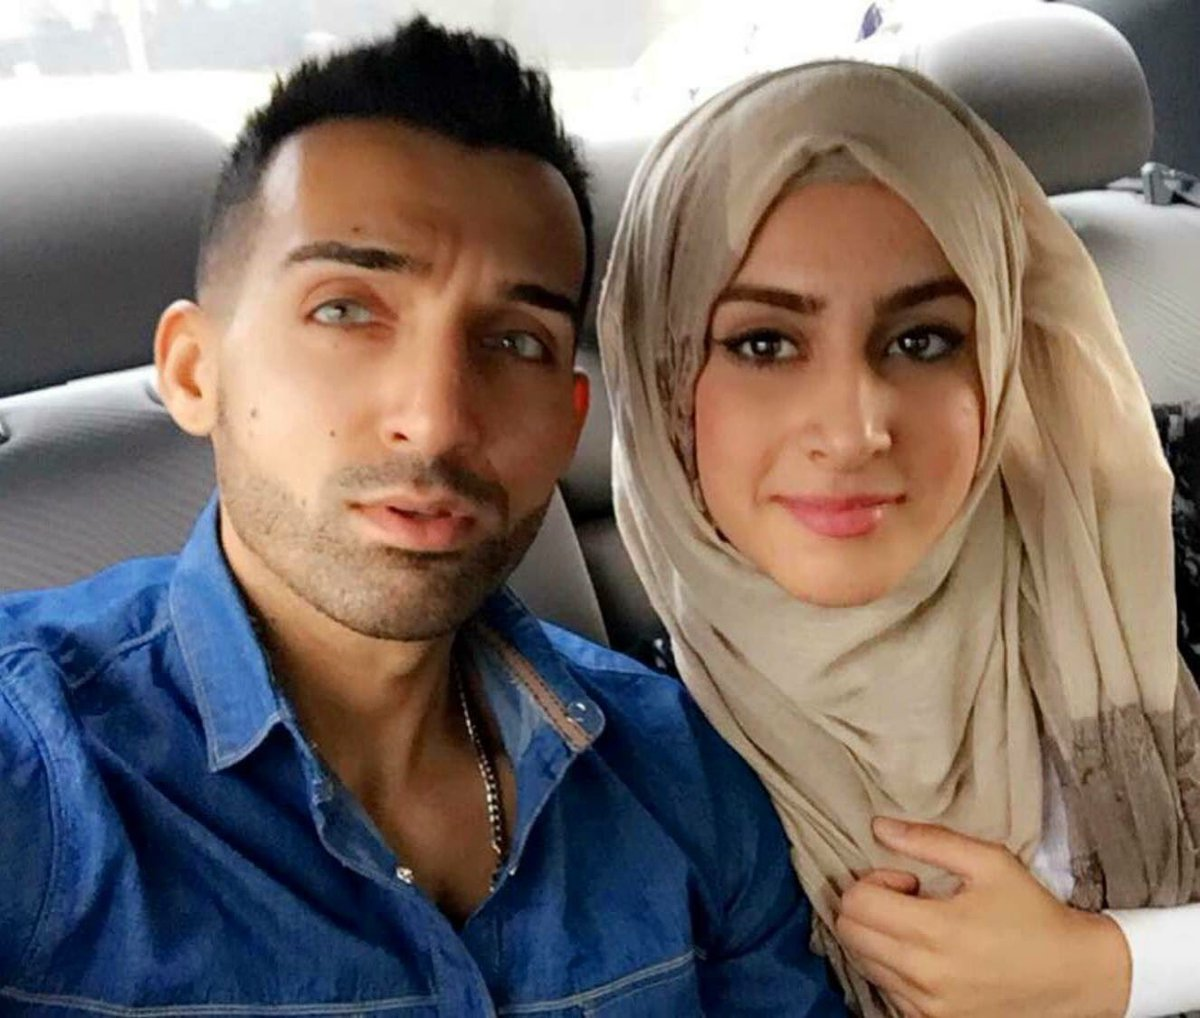 Sham Idrees On Twitter Here Is My Confession Video About My Wife And Kids Https T Co Rm9yqxvwnd Https T Co 43j5gjaewy